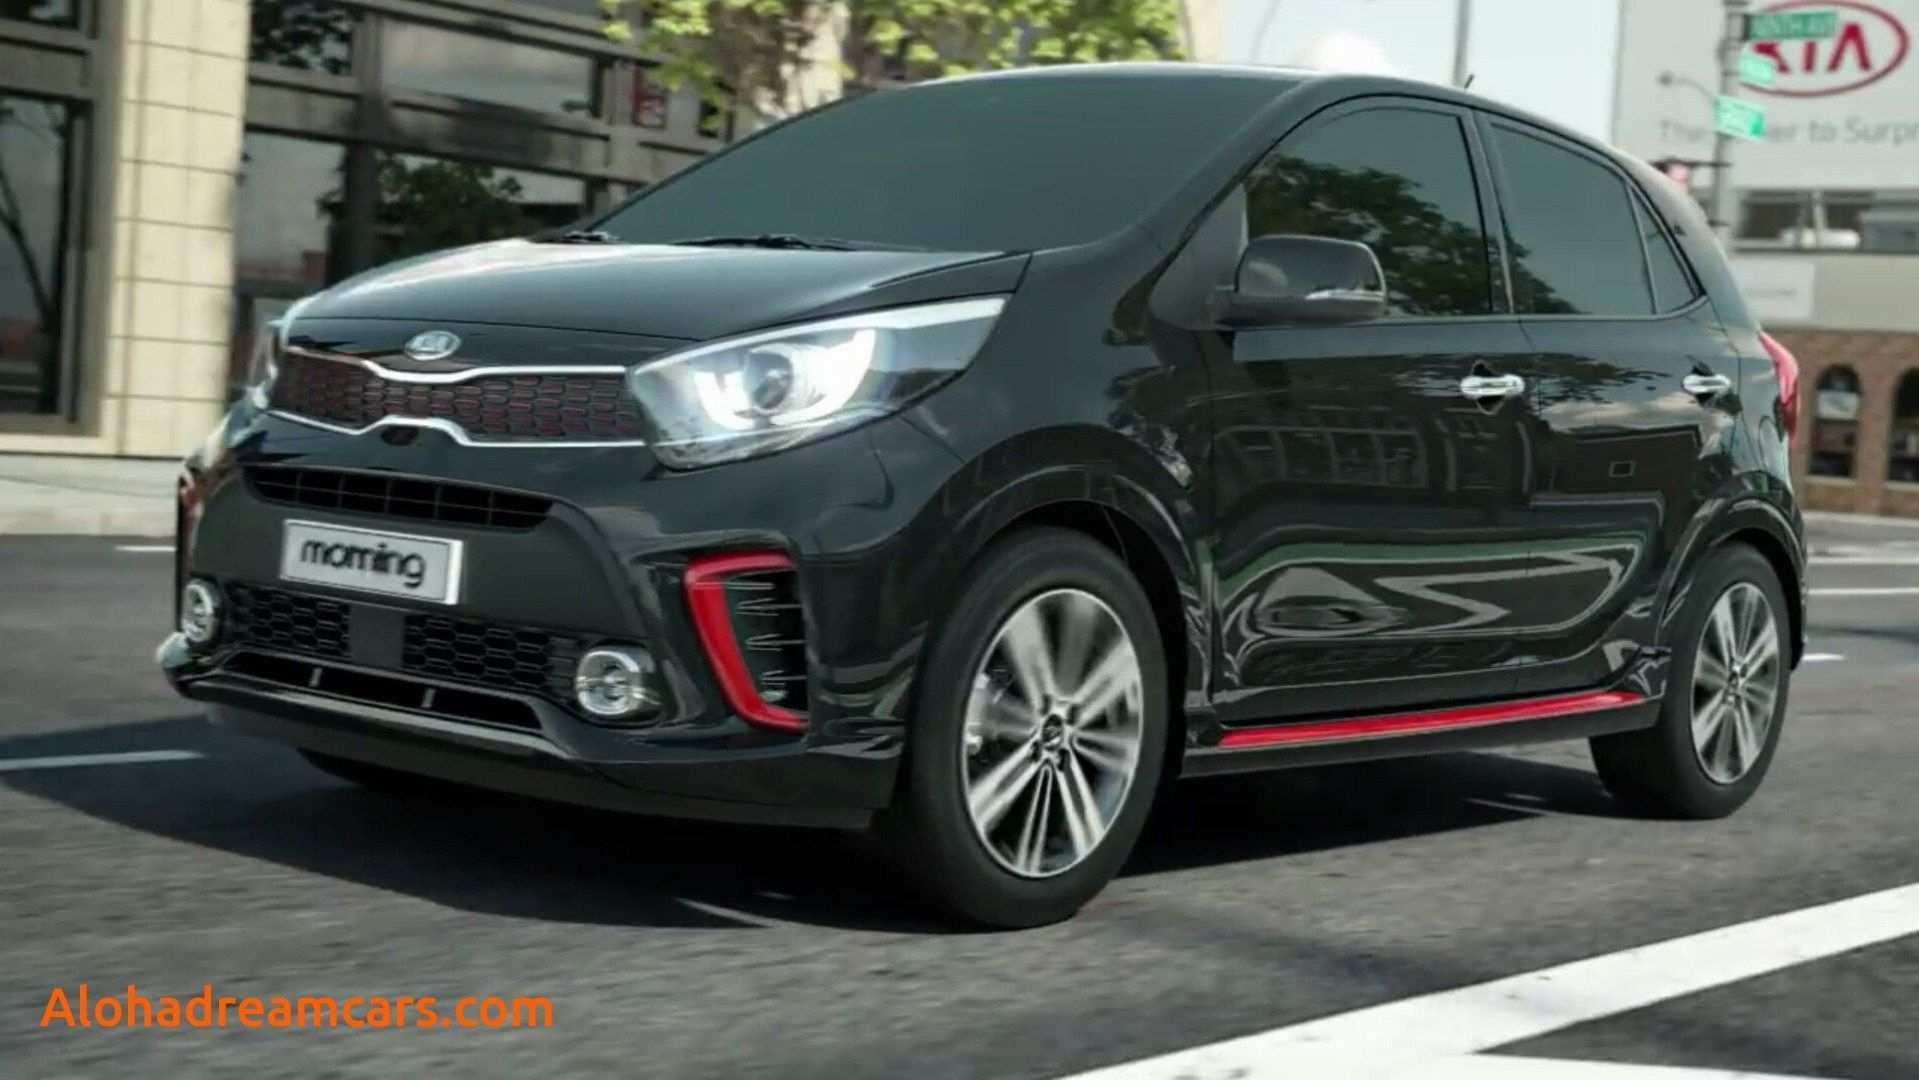 60 Best Review Kia Picanto 2020 Exterior Release Date for Kia Picanto 2020 Exterior